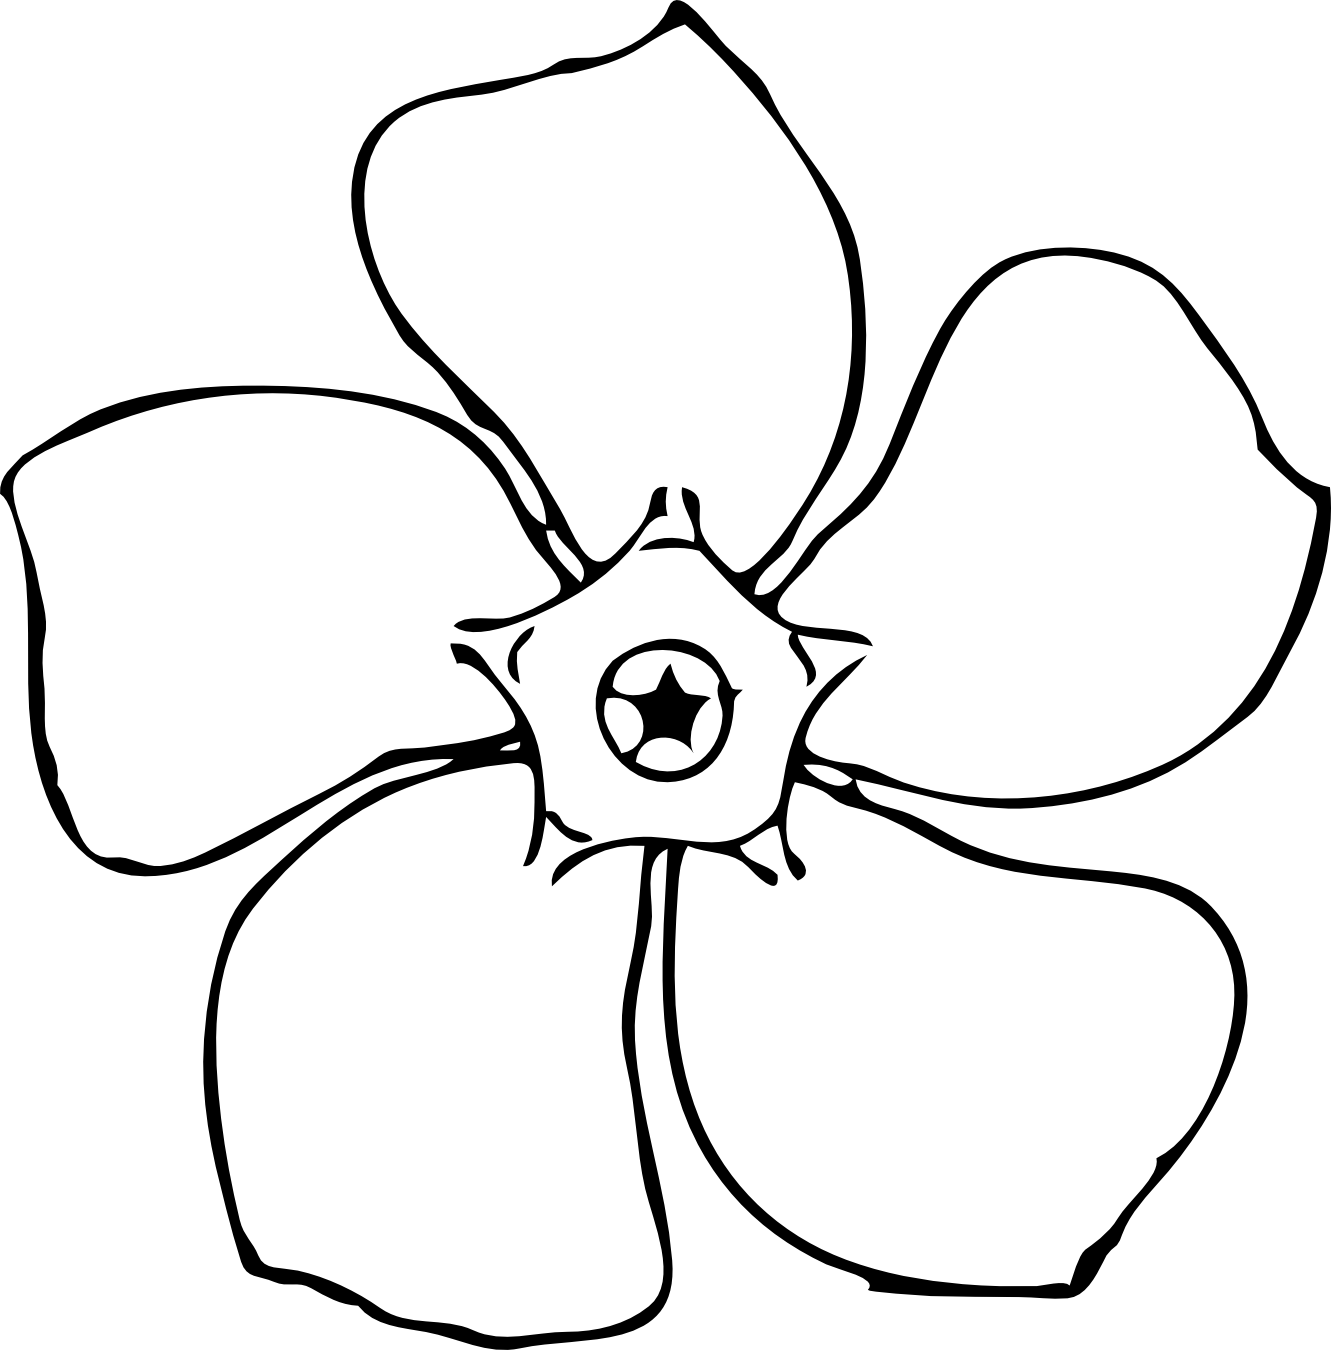 Line Art Flowers Images : Clipart spring flowers black and white panda